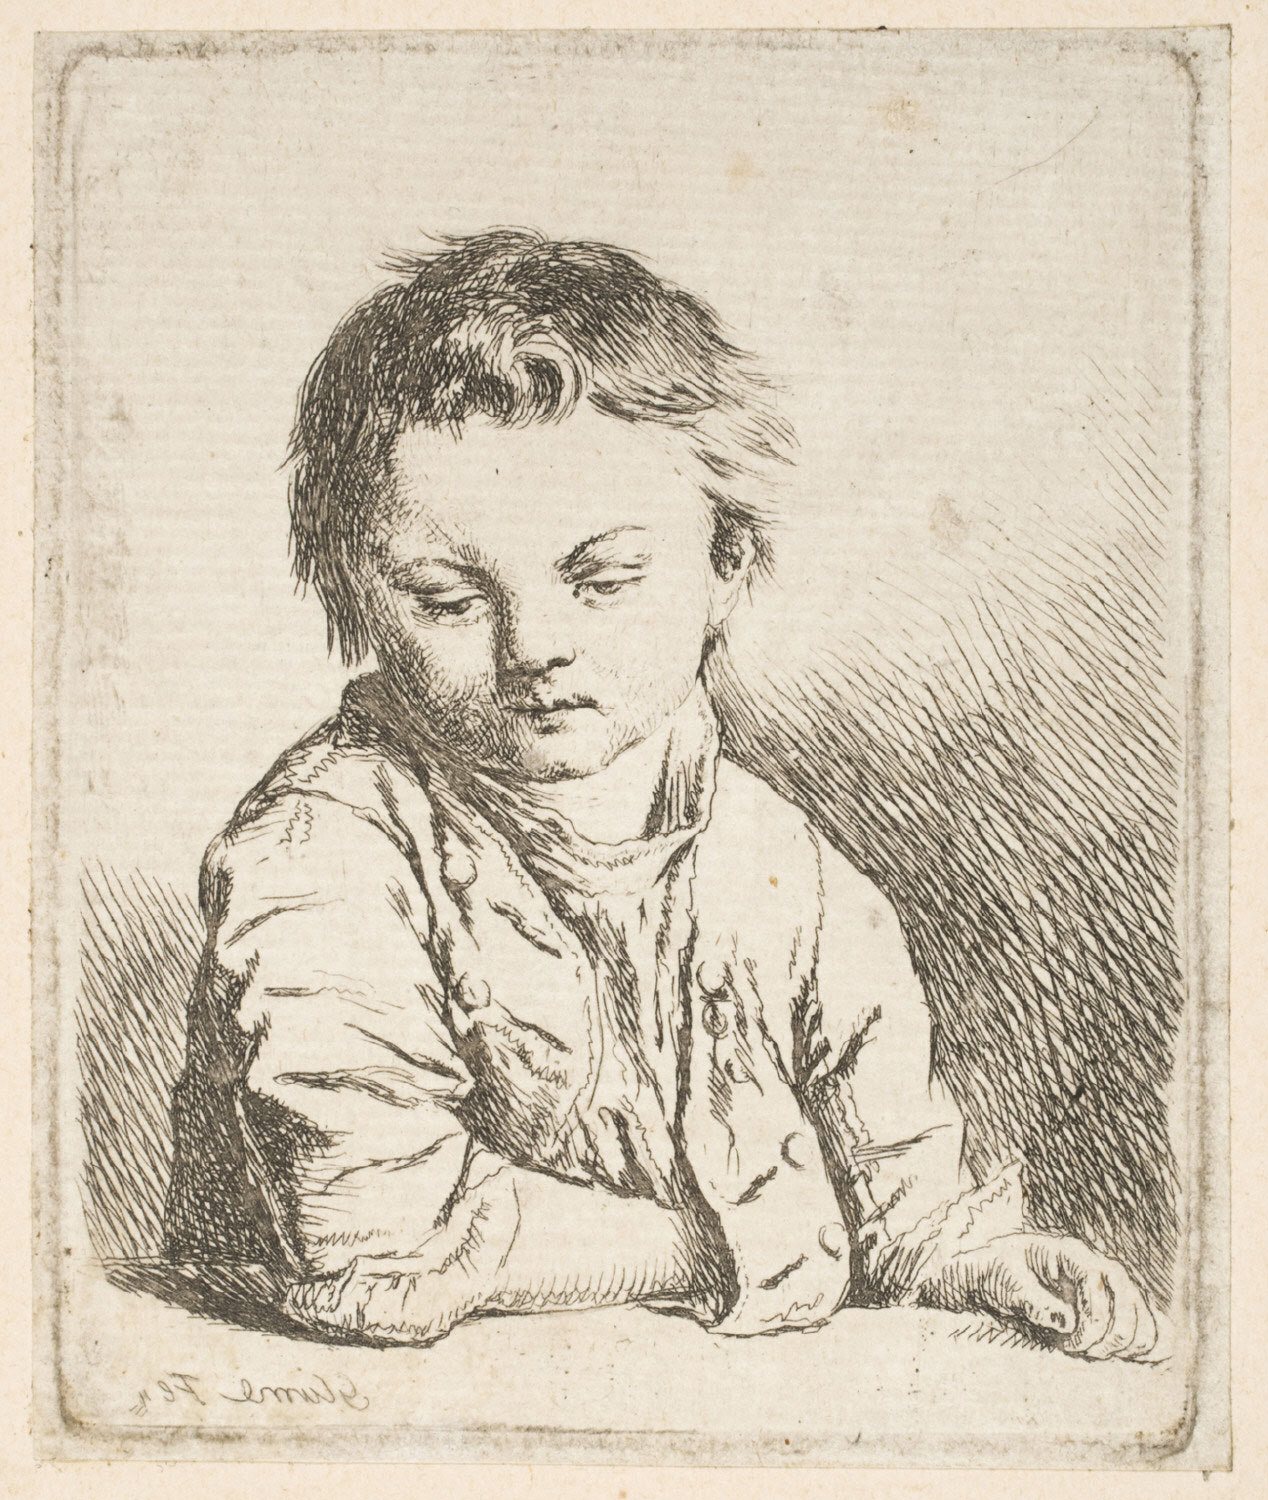 Boy with Right Hand in Jacket